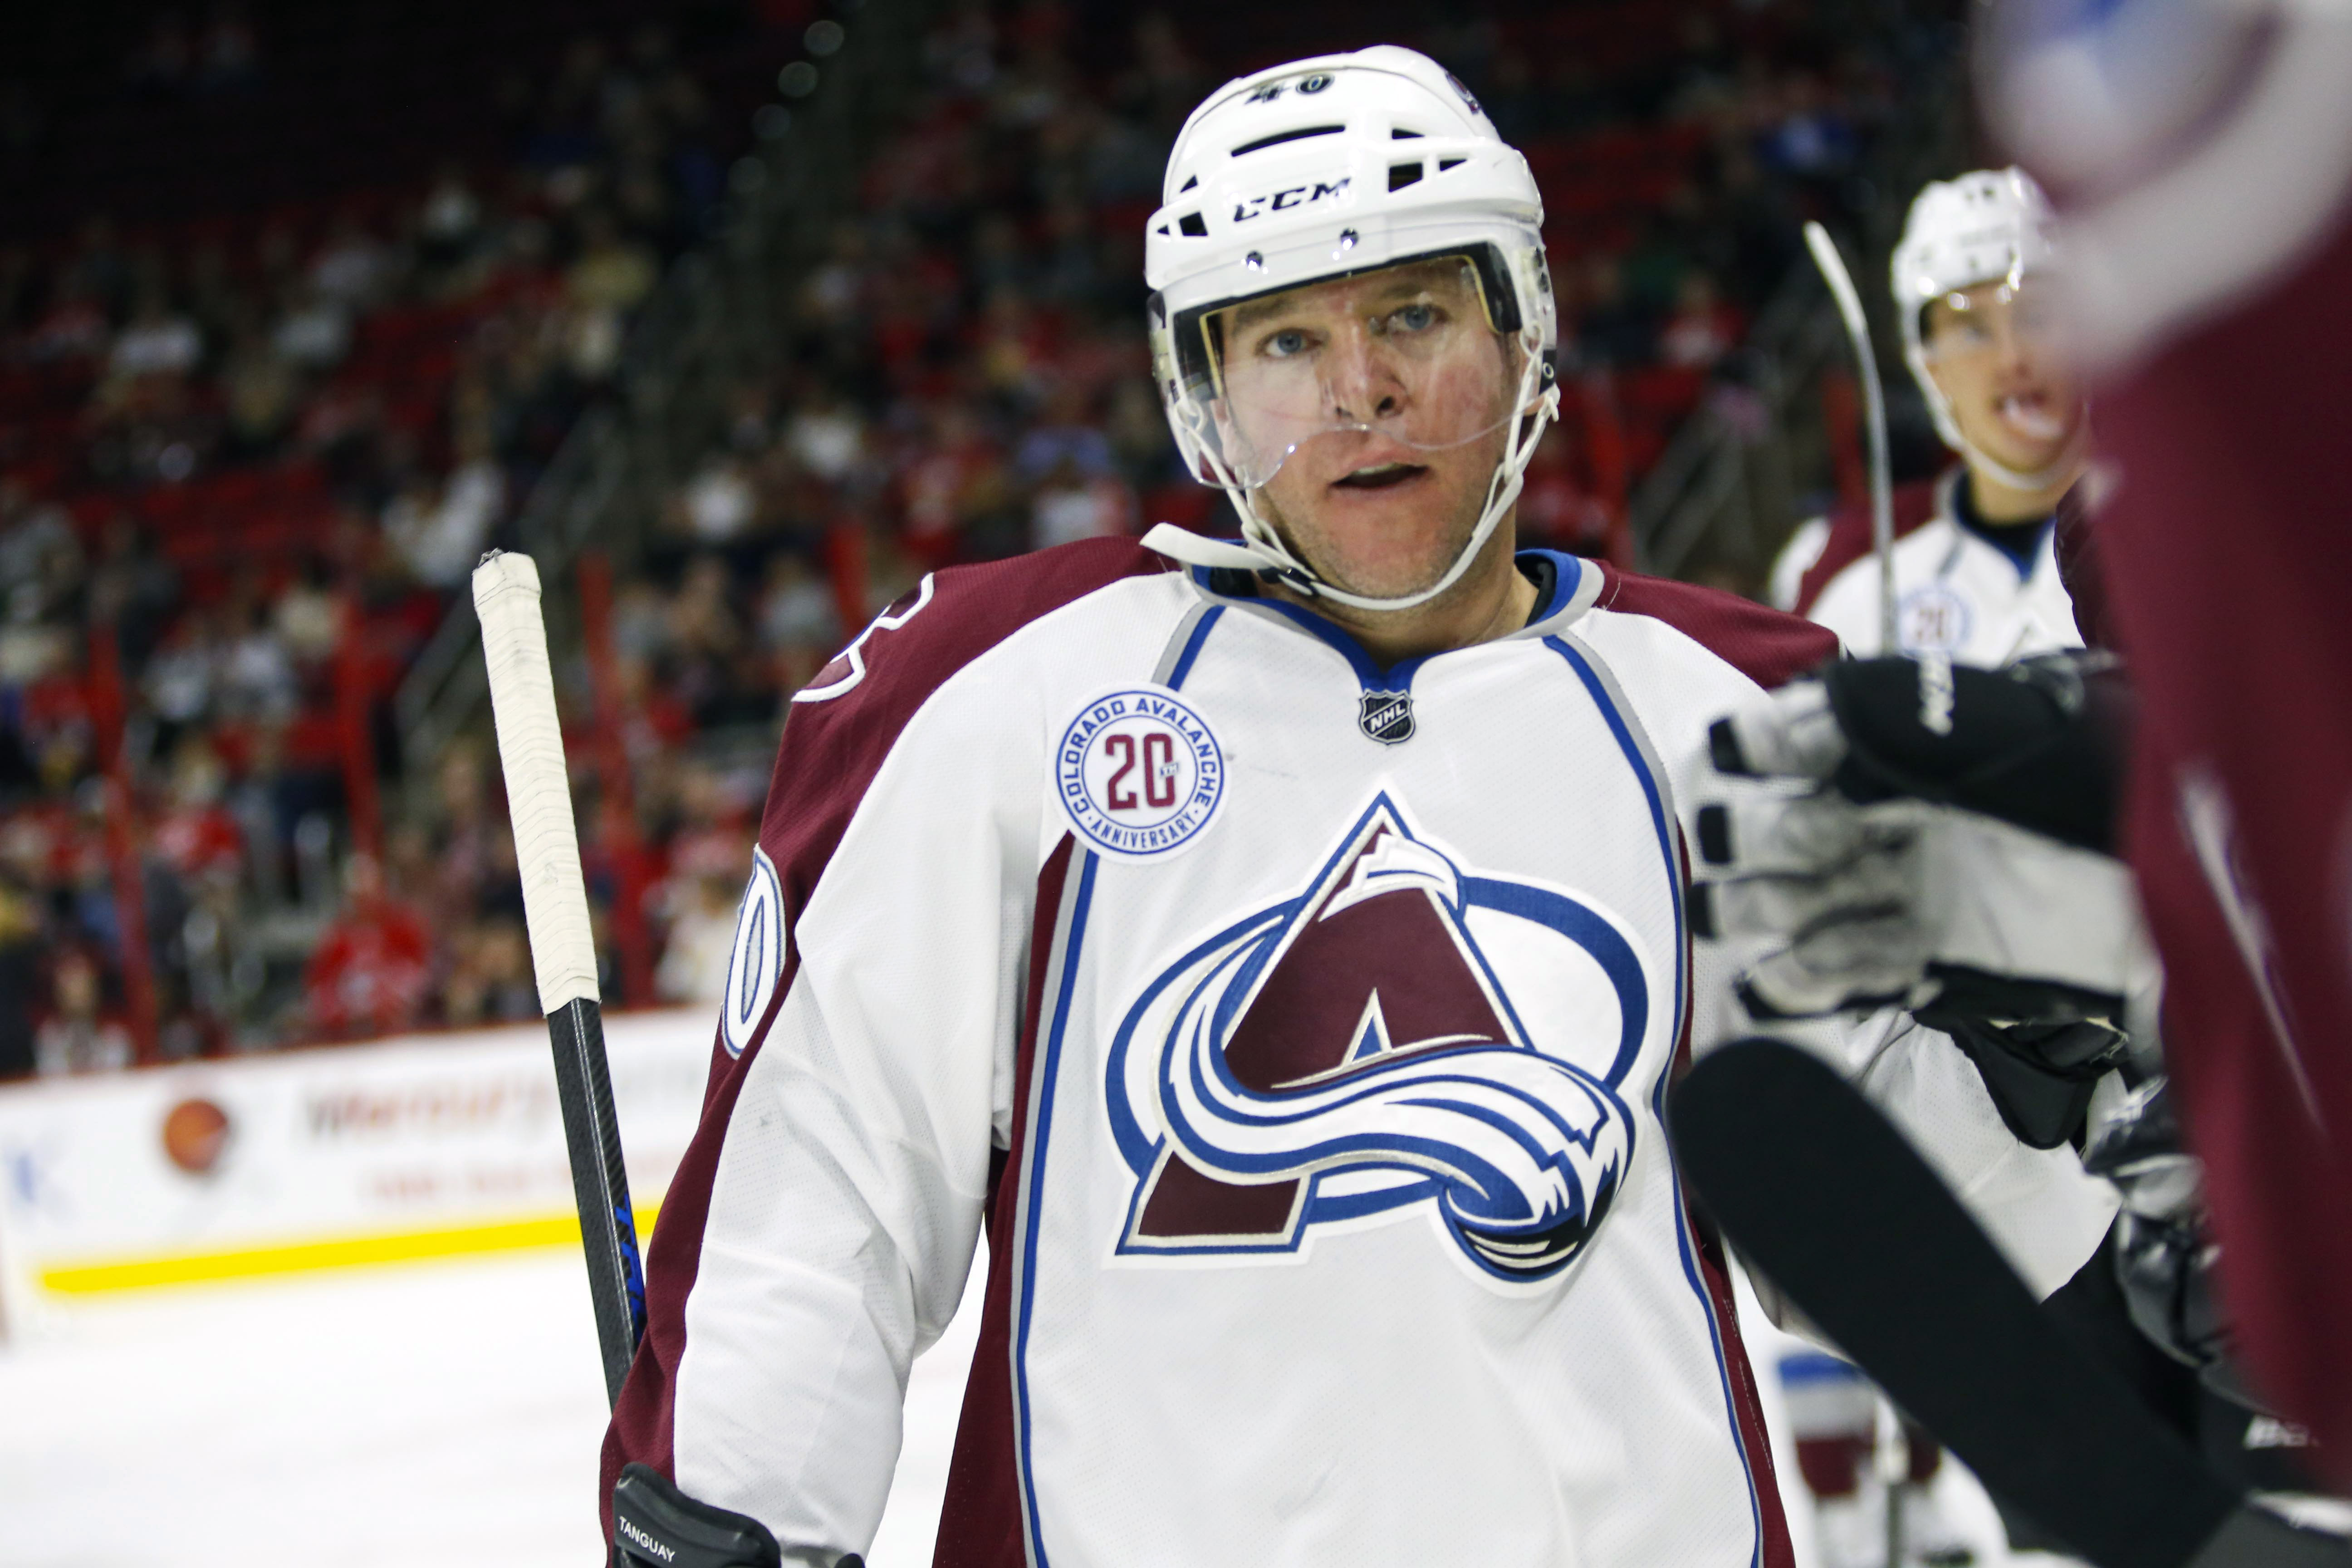 Iowa Wild Hire Alex Tanguay as an Assistant Coach and 2019-20 Iowa Wild Season Thoughts